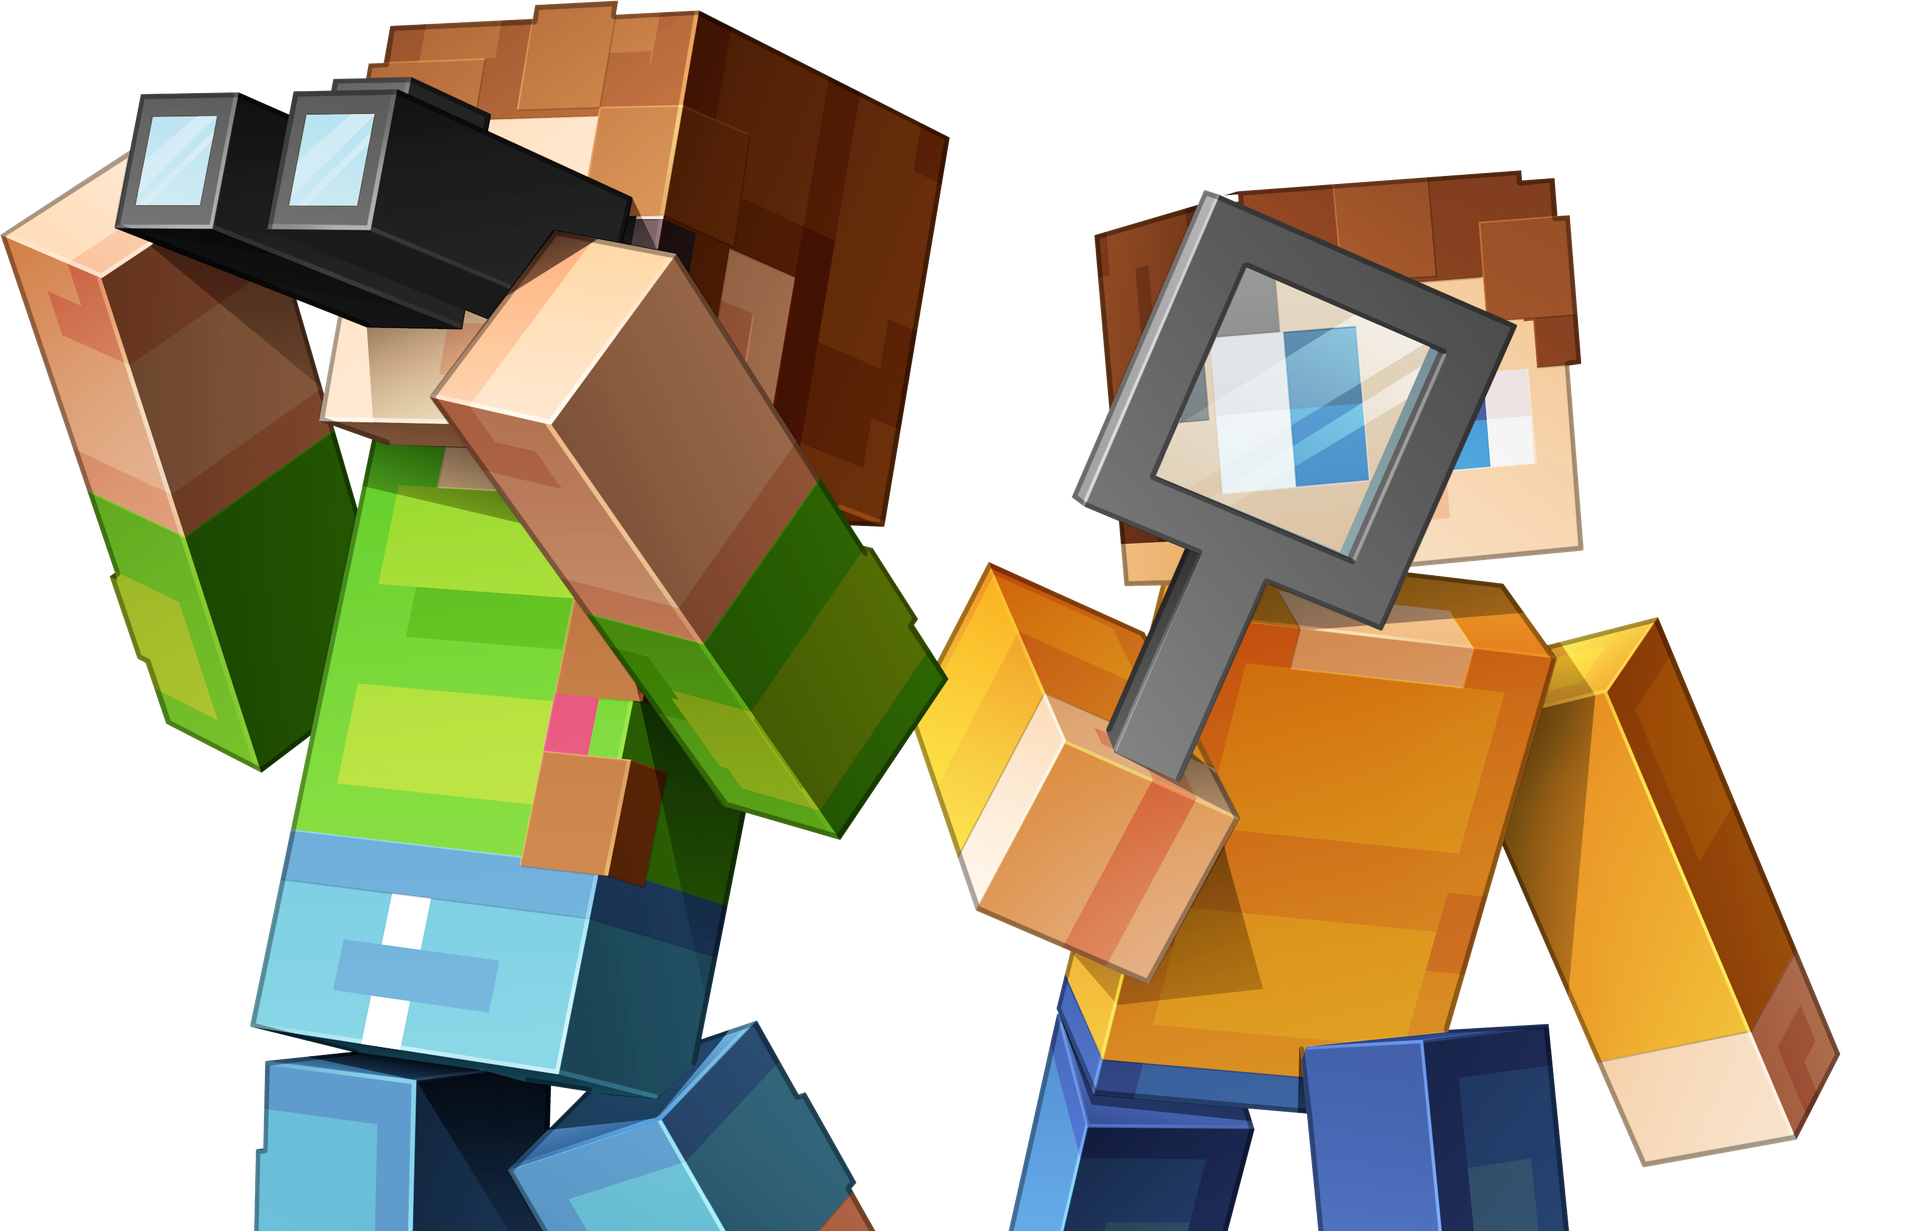 Discover new interesting servers together with your friends in Minecraft with the Essential Mod.